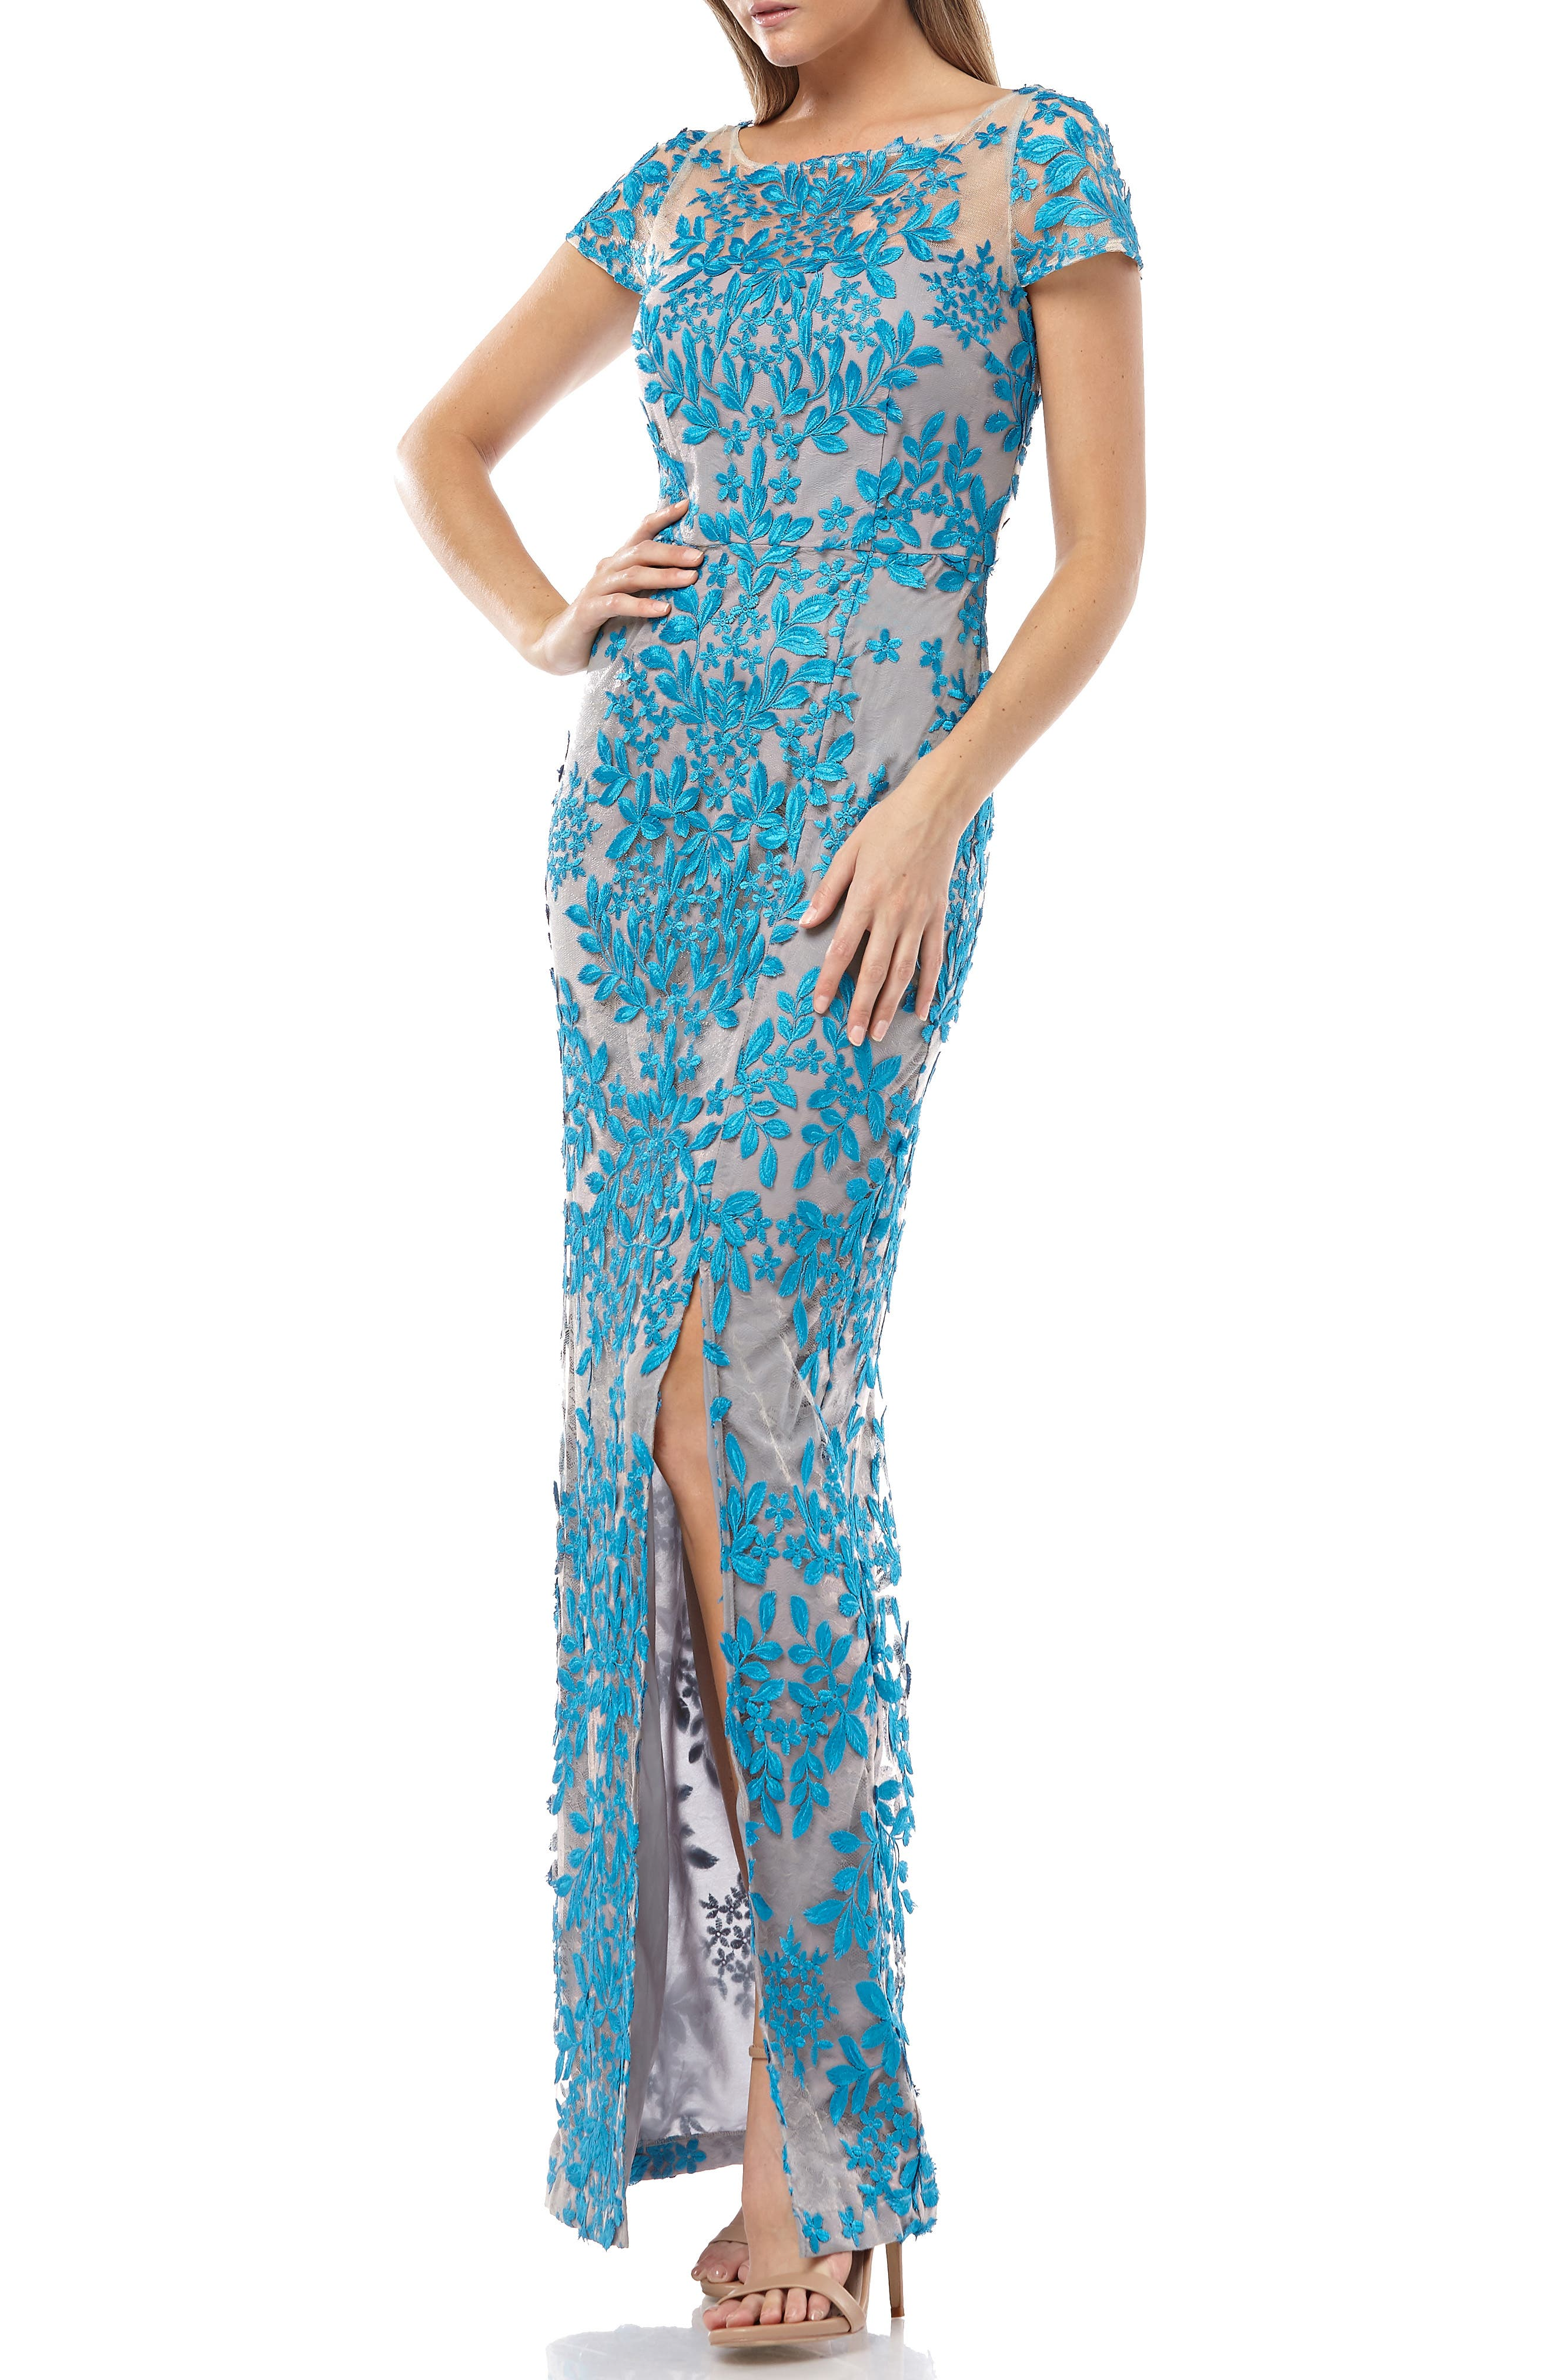 Js Collections Leaf Embroidered Evening Dress, Blue